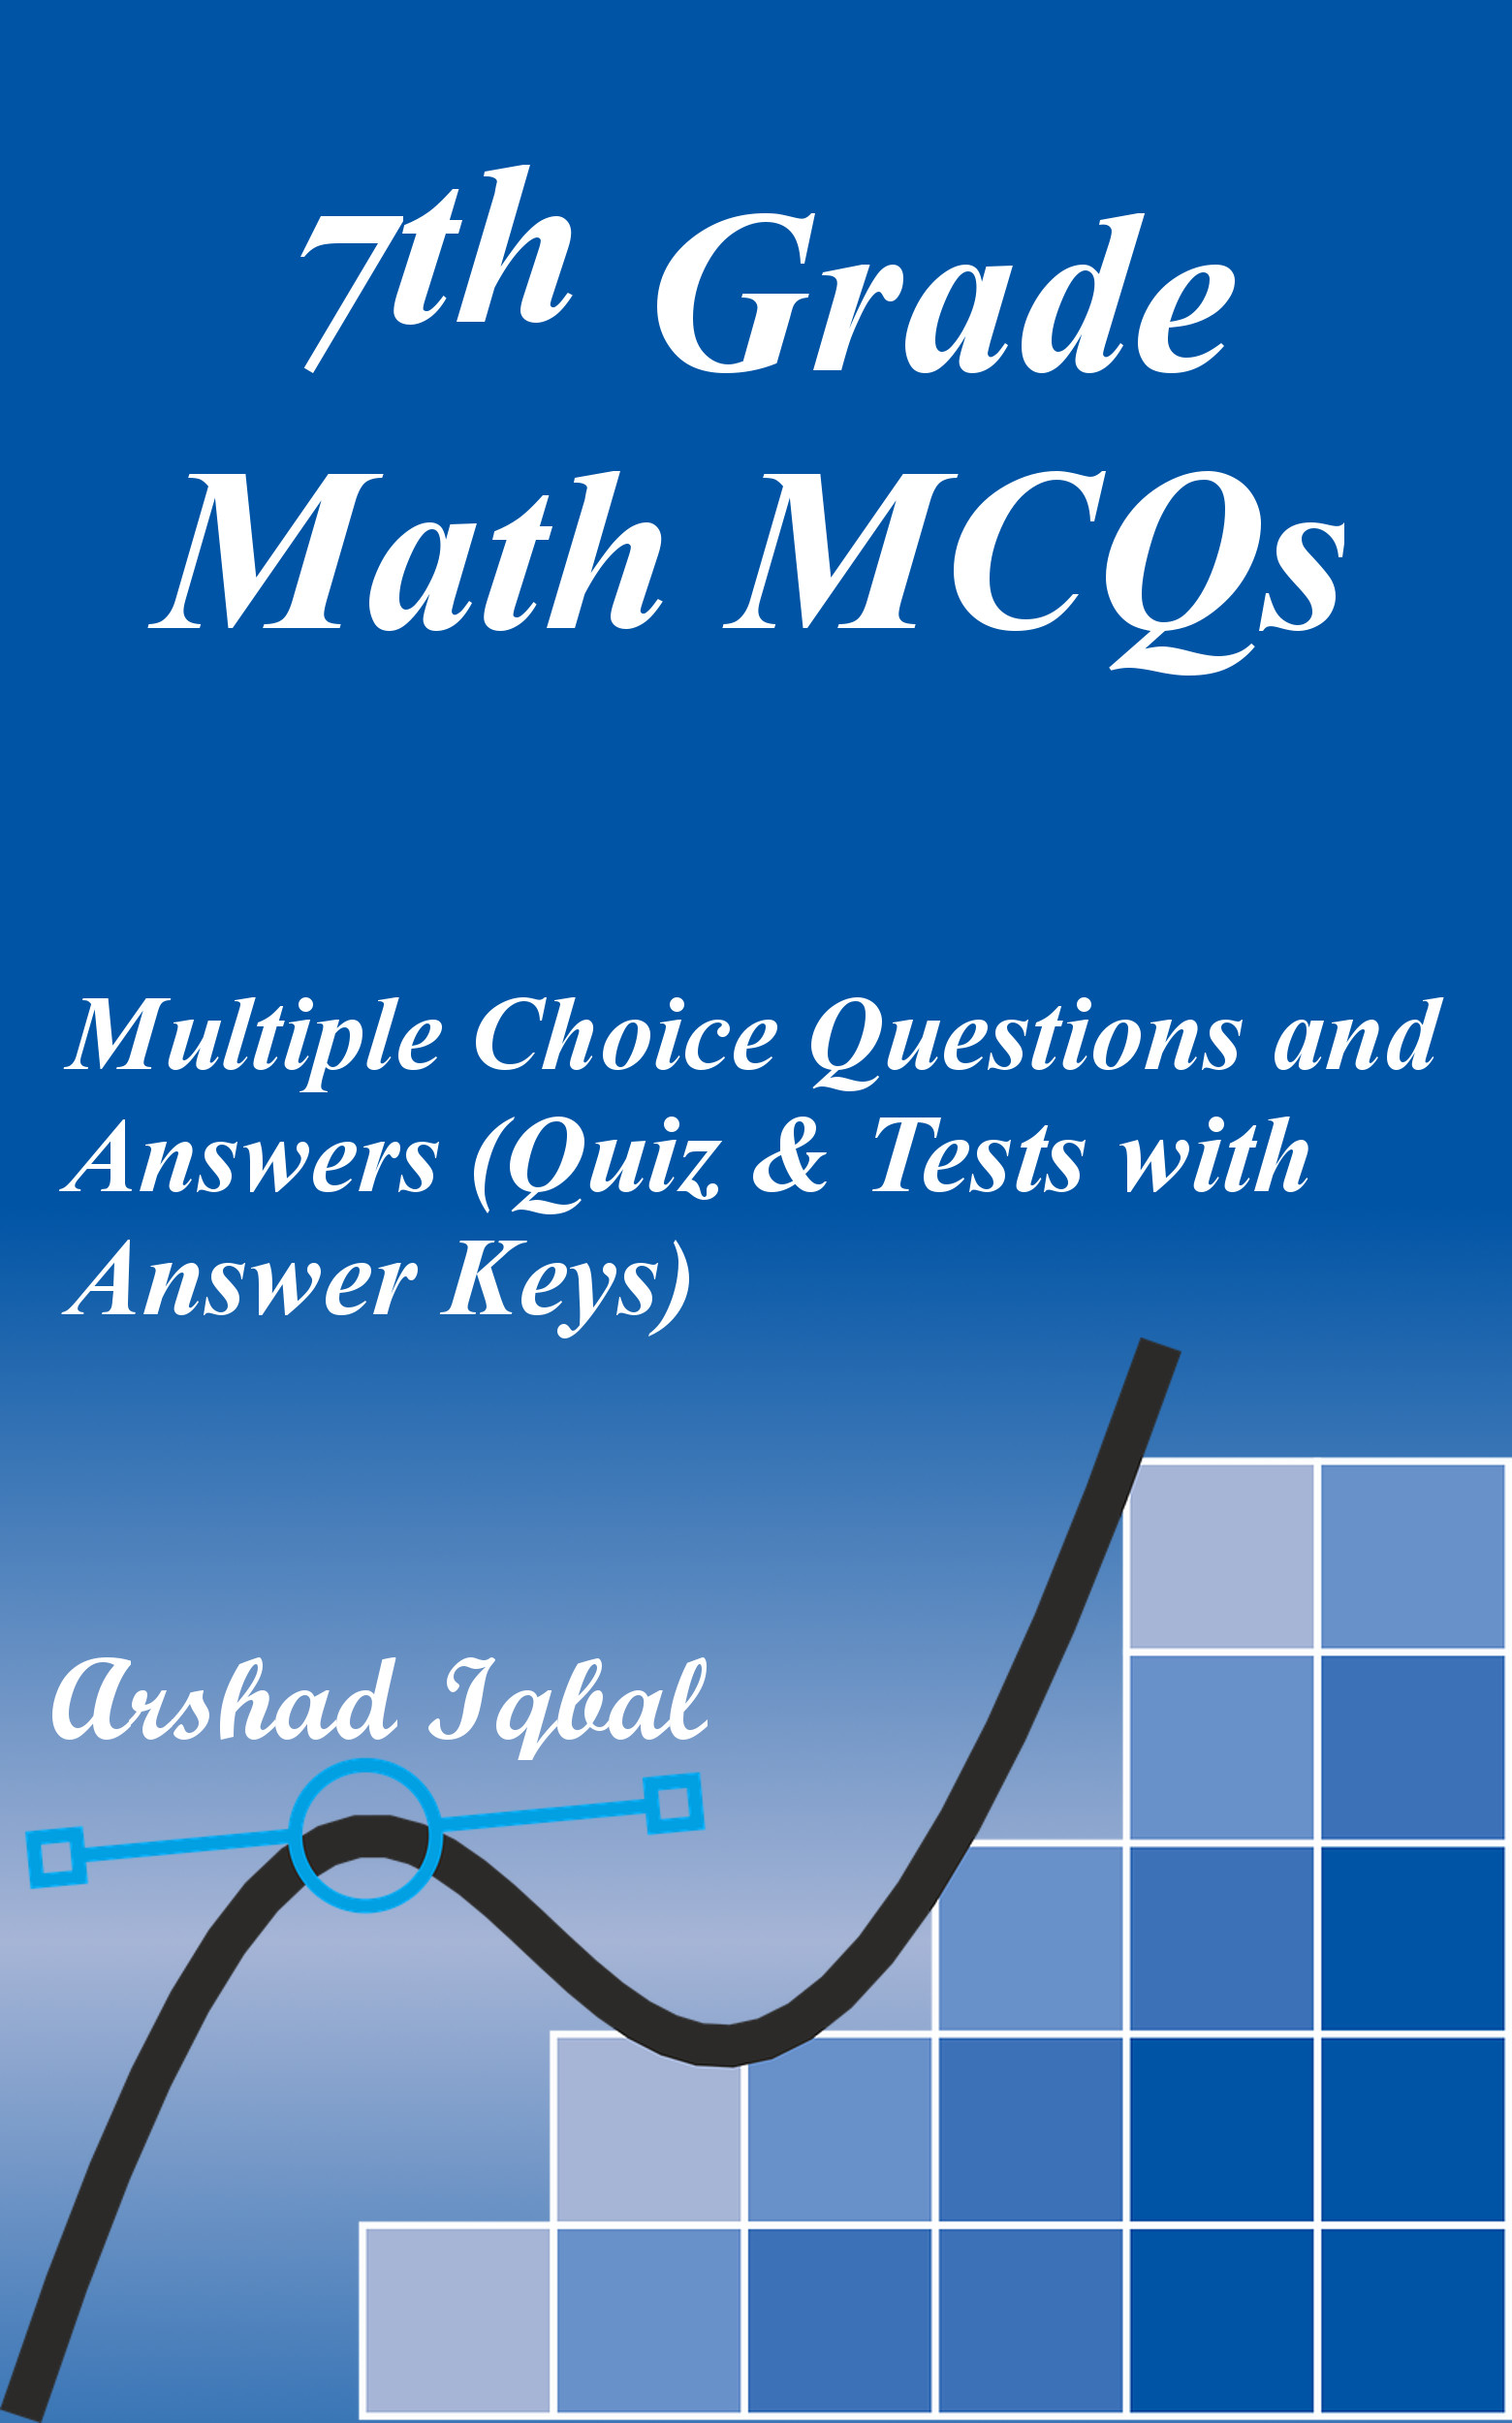 Smashwords - 7th Grade Math MCQs: Multiple Choice ...